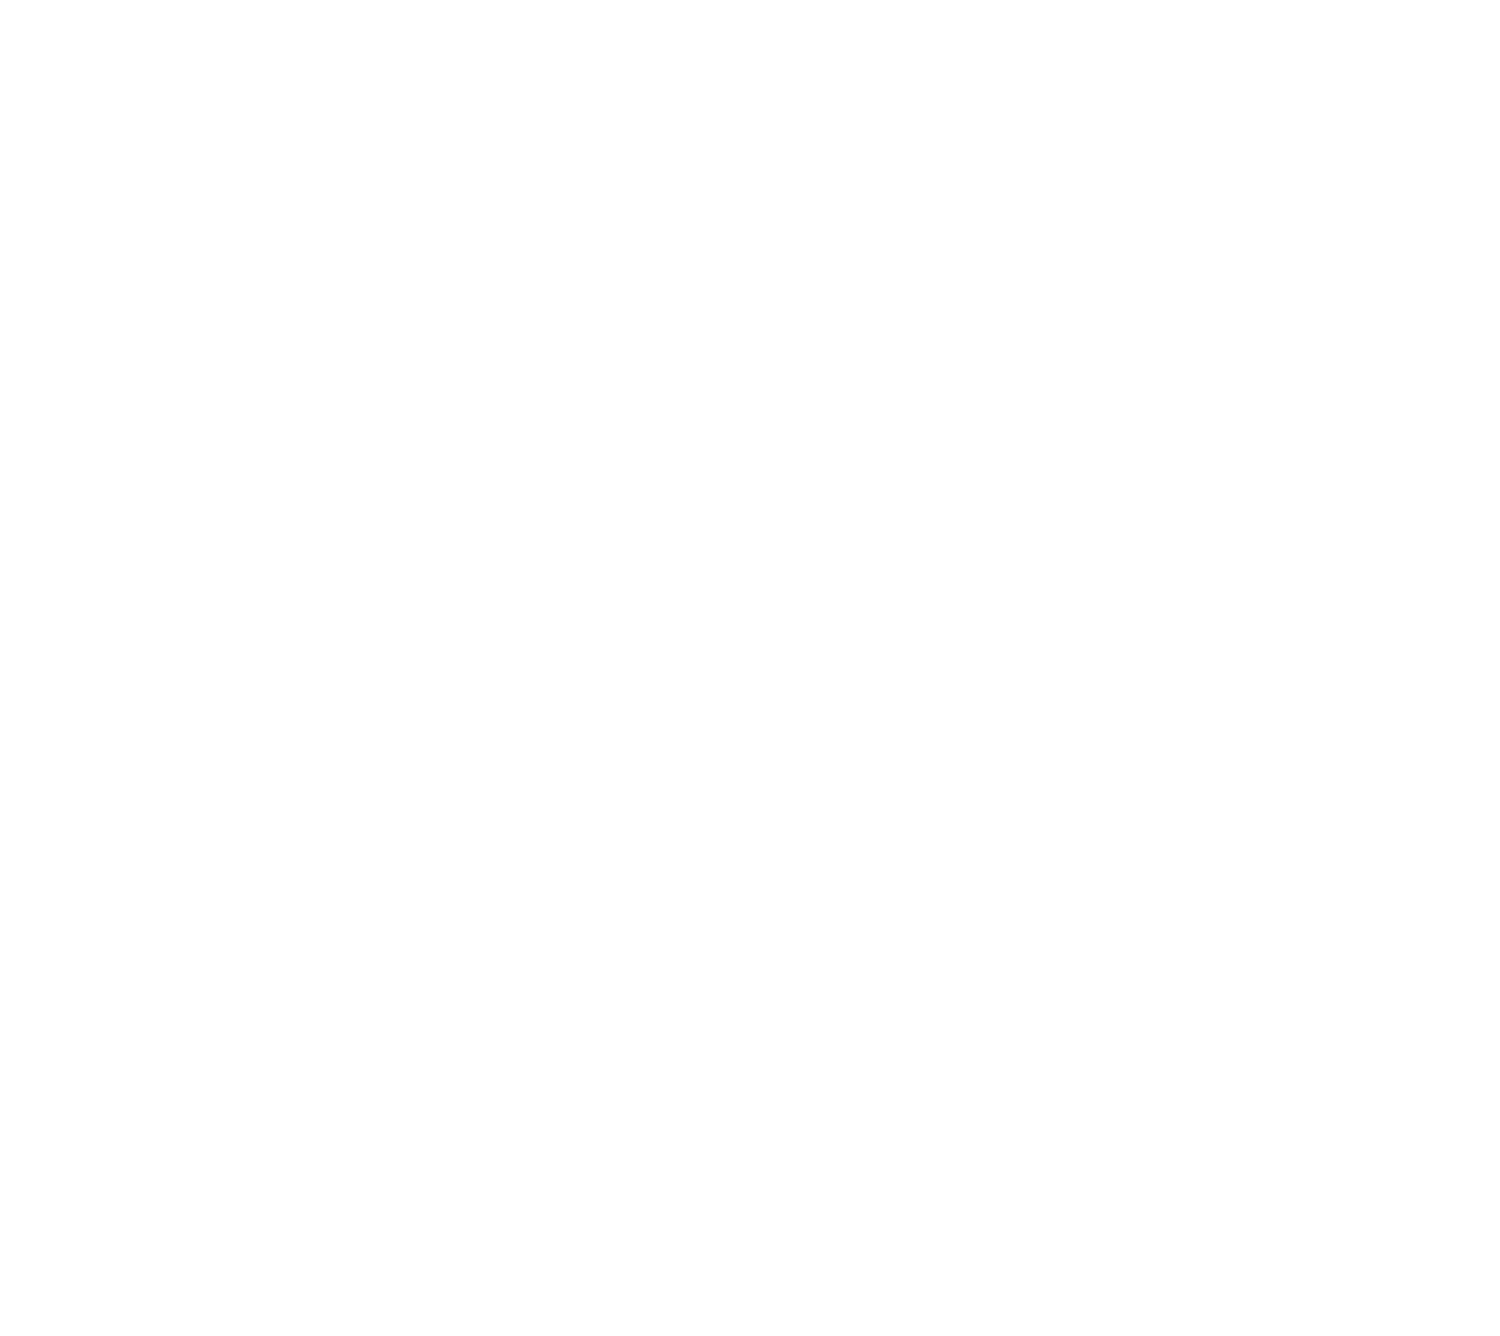 La Lumiere Photography